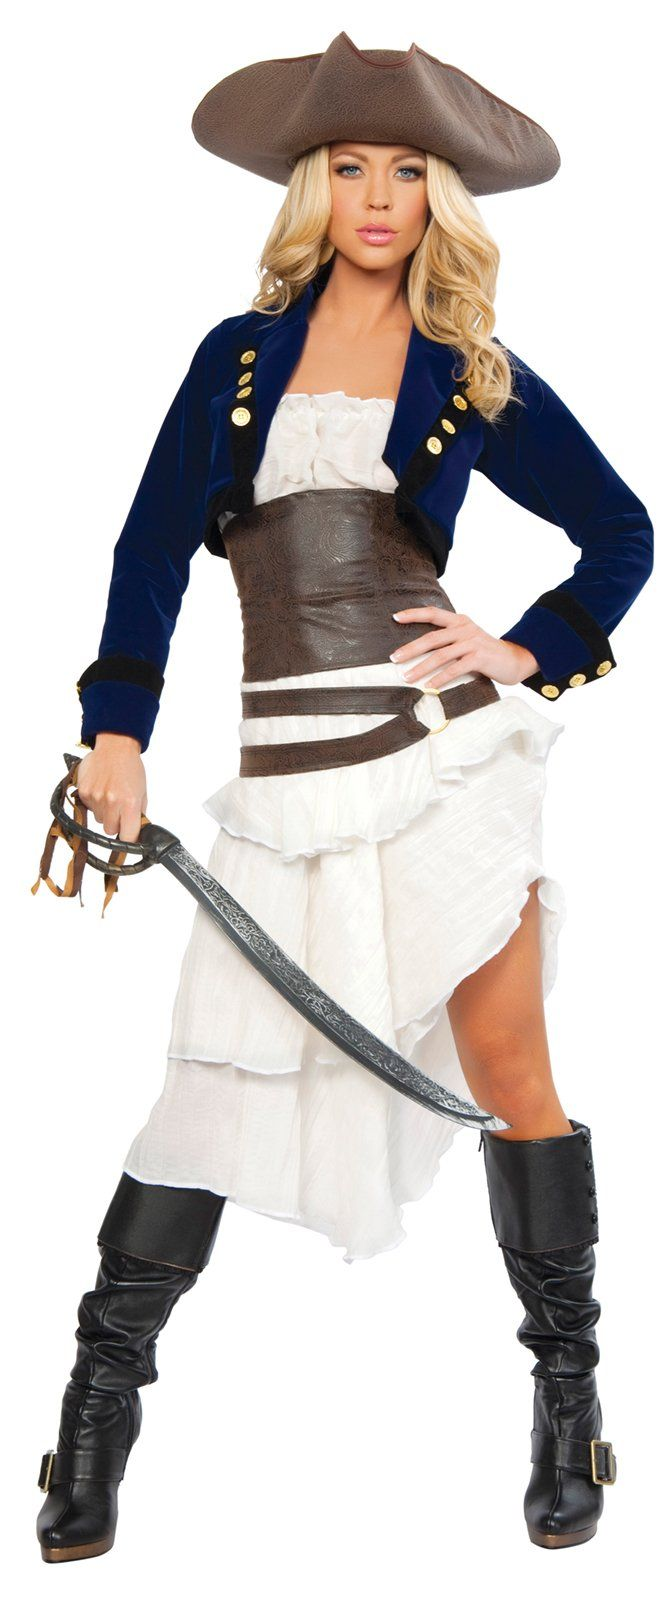 Swashbuckling just got way more stylish.     Turn heads on the high seas on this stunning ensemble. The Colonial Pirate Adult Costume includes a strapless, tiered dress, faux-leather belt with O-ring details, coordinating faux-leather waist cincher, bolero jacket, pirate hat and sword.